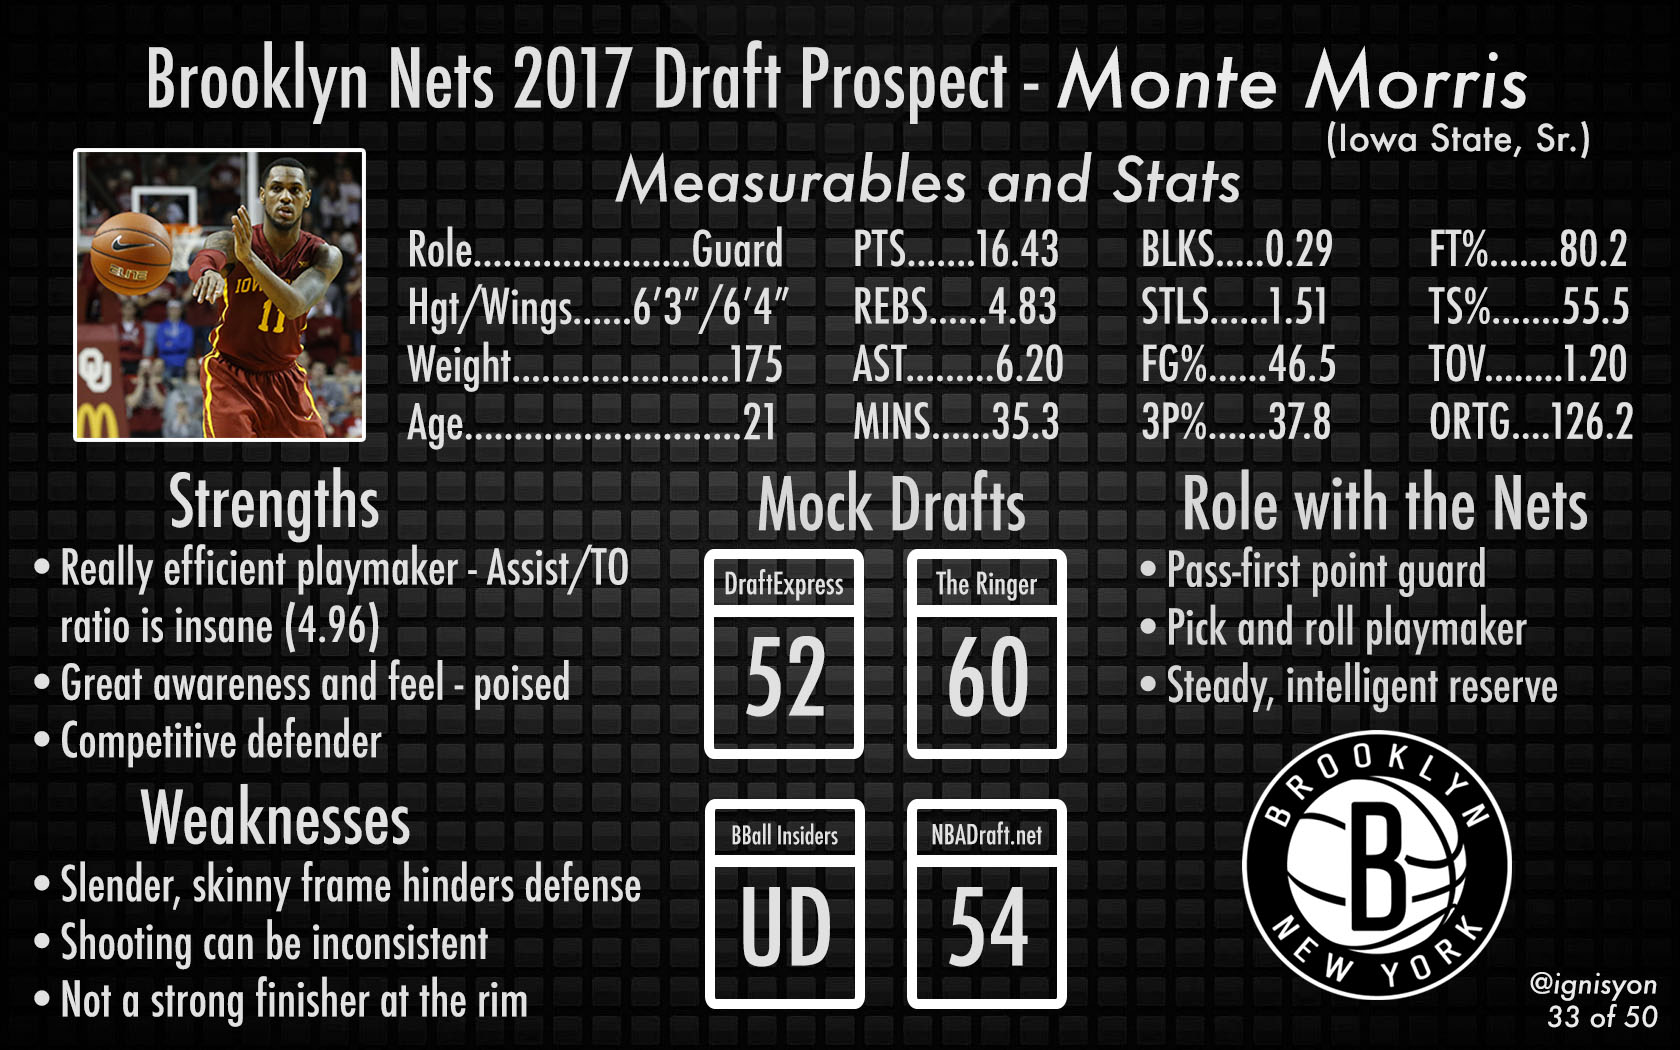 Monte Morris Brooklyn Nets NBA Draft 2017